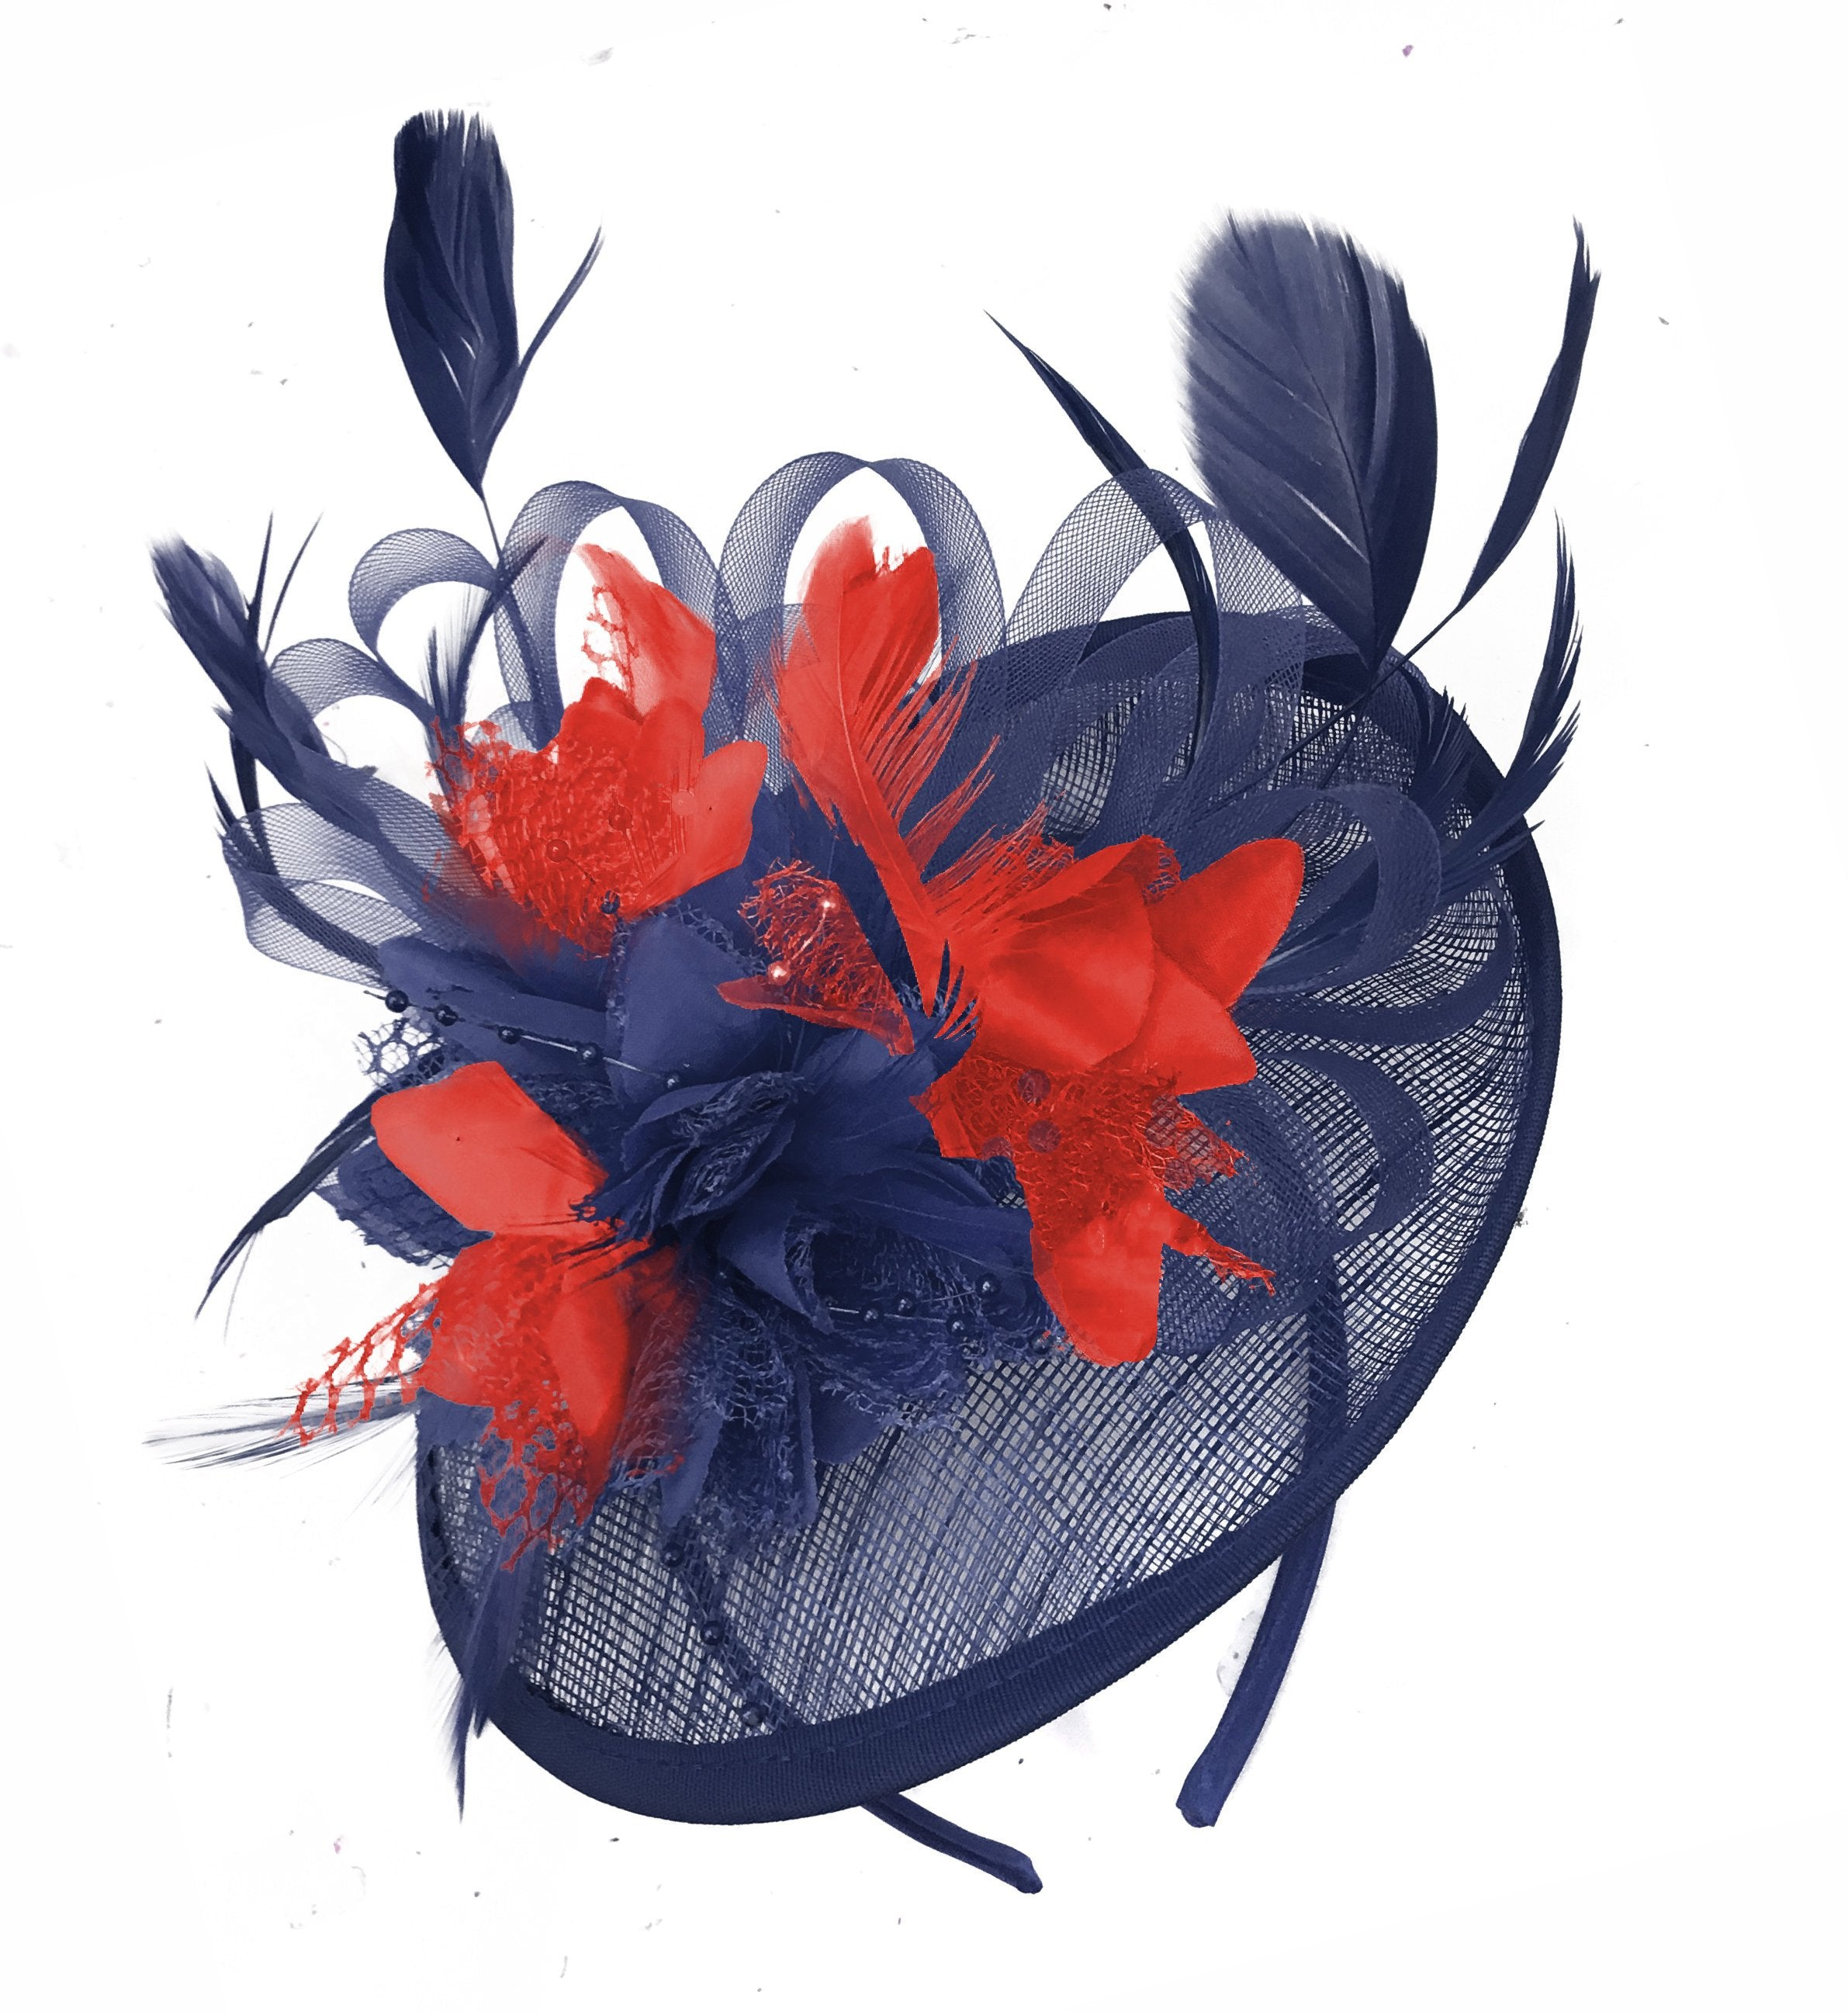 Caprilite Sinamay Navy Blue and Red Disc Saucer Fascinator Hat for Women Weddings Headband